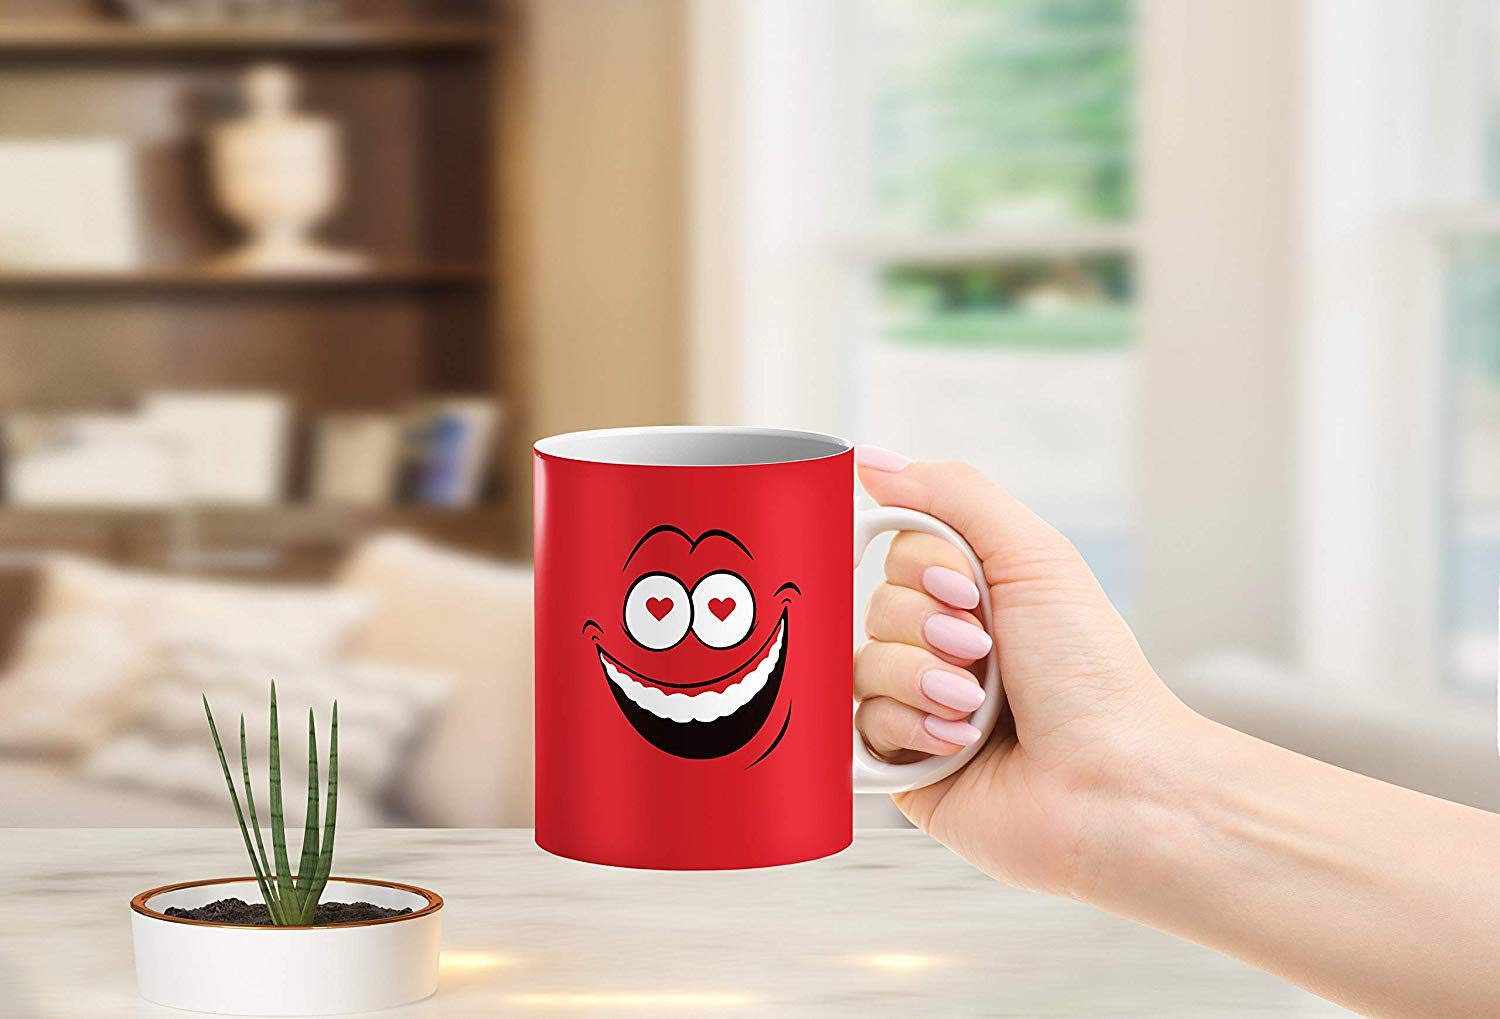 Heat Sensitive Color Changing Coffee Mug Funny Coffee Cup Red Loved Funny Face Design Funny Gift Idea B079FRF6YM 8